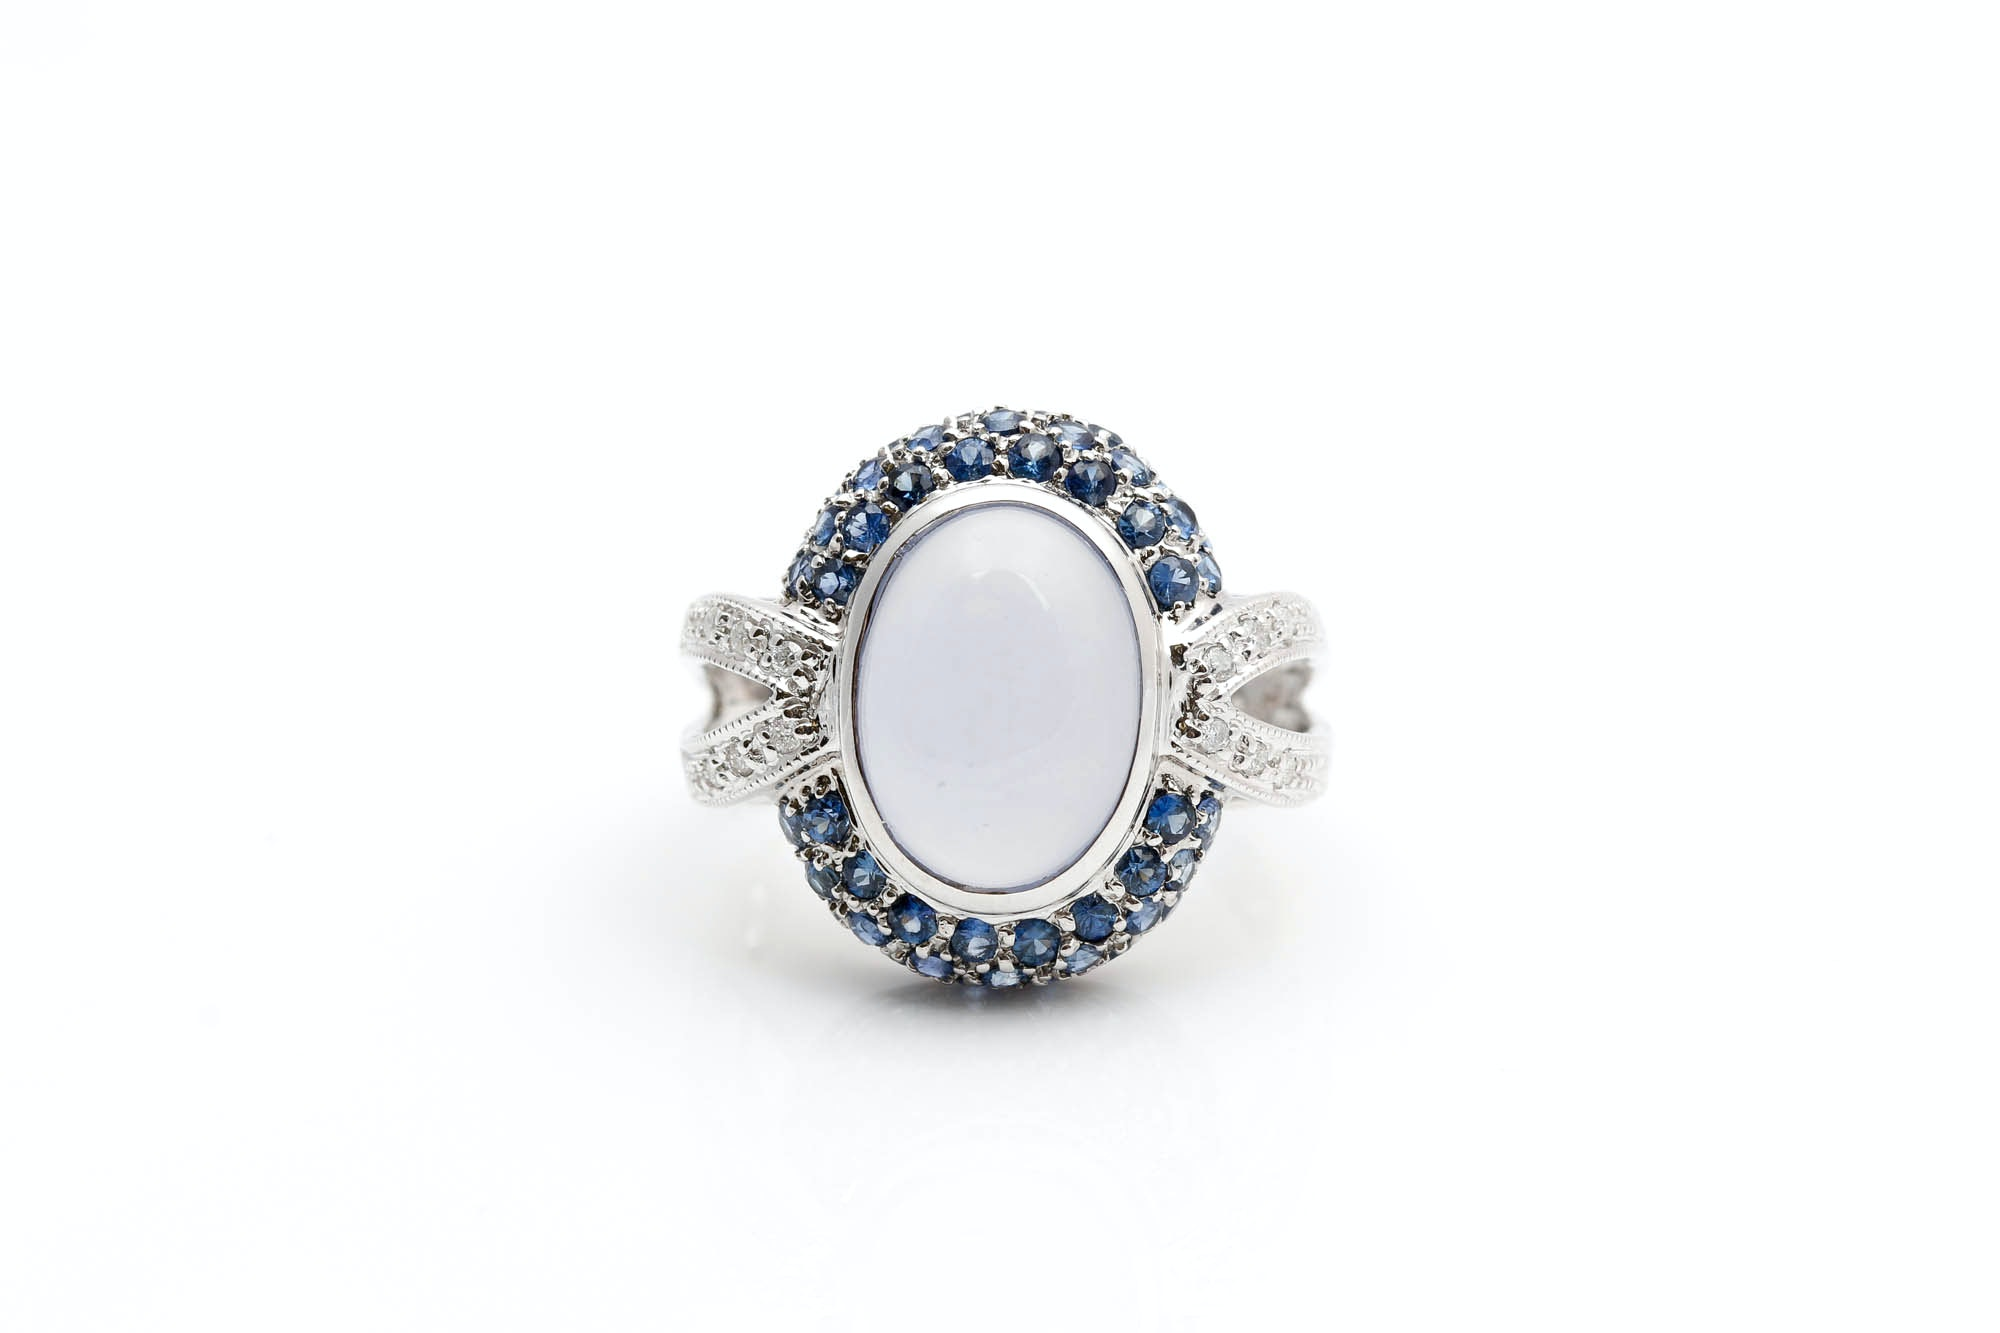 14K White Gold Chalcedony, Sapphire, and Diamond Ring